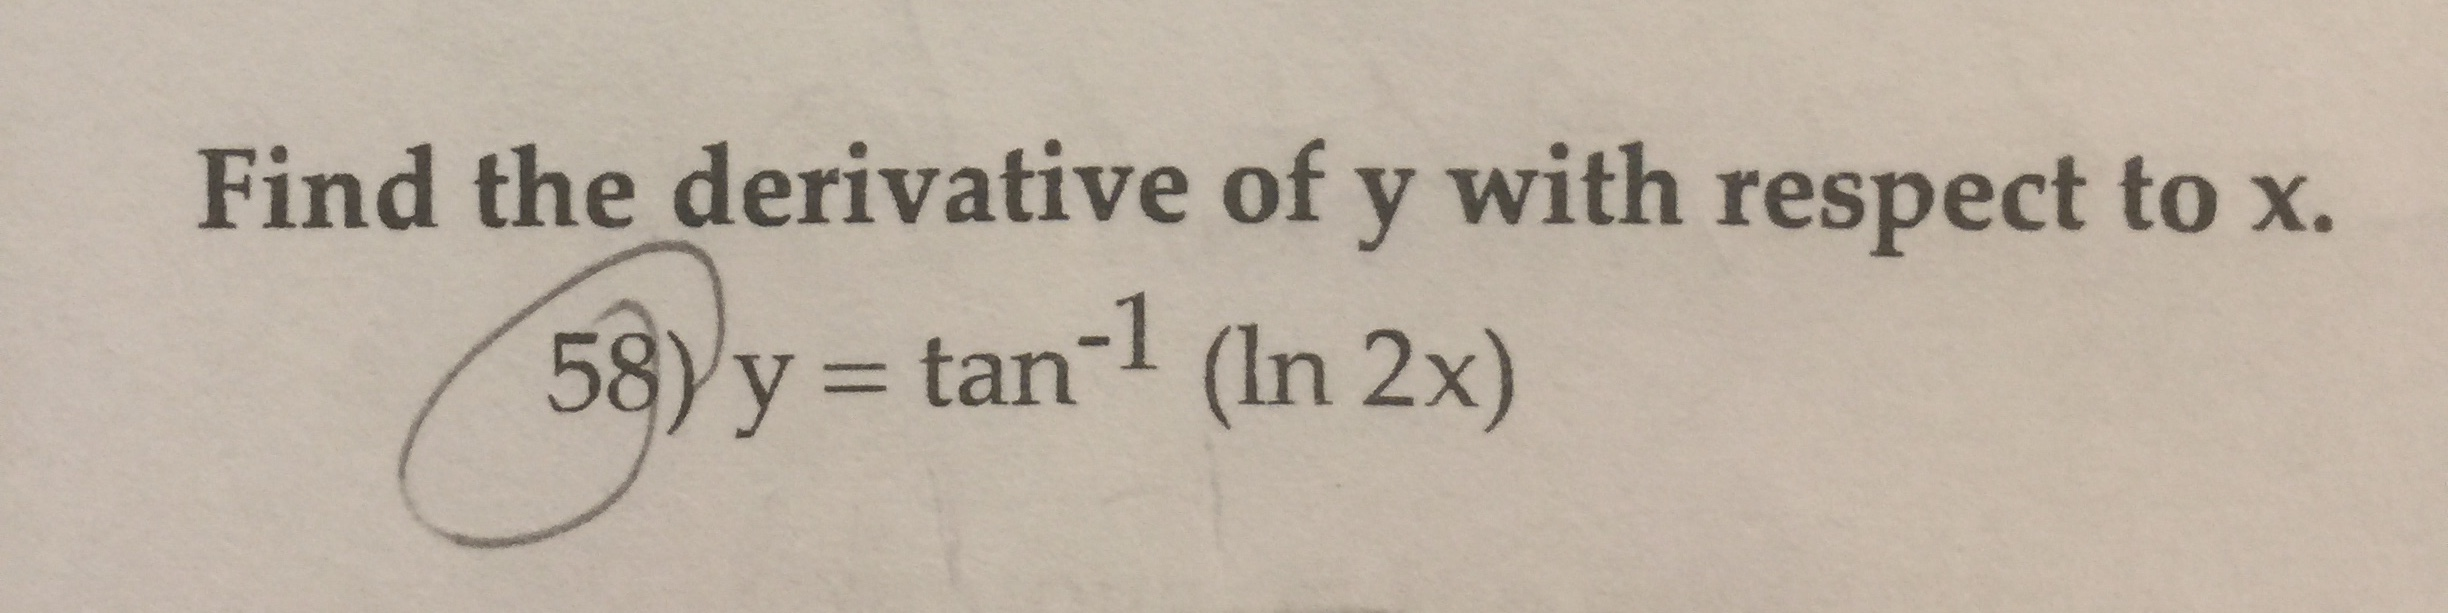 Find the derivative of y with respect to x. 58)y tan (In 2x)